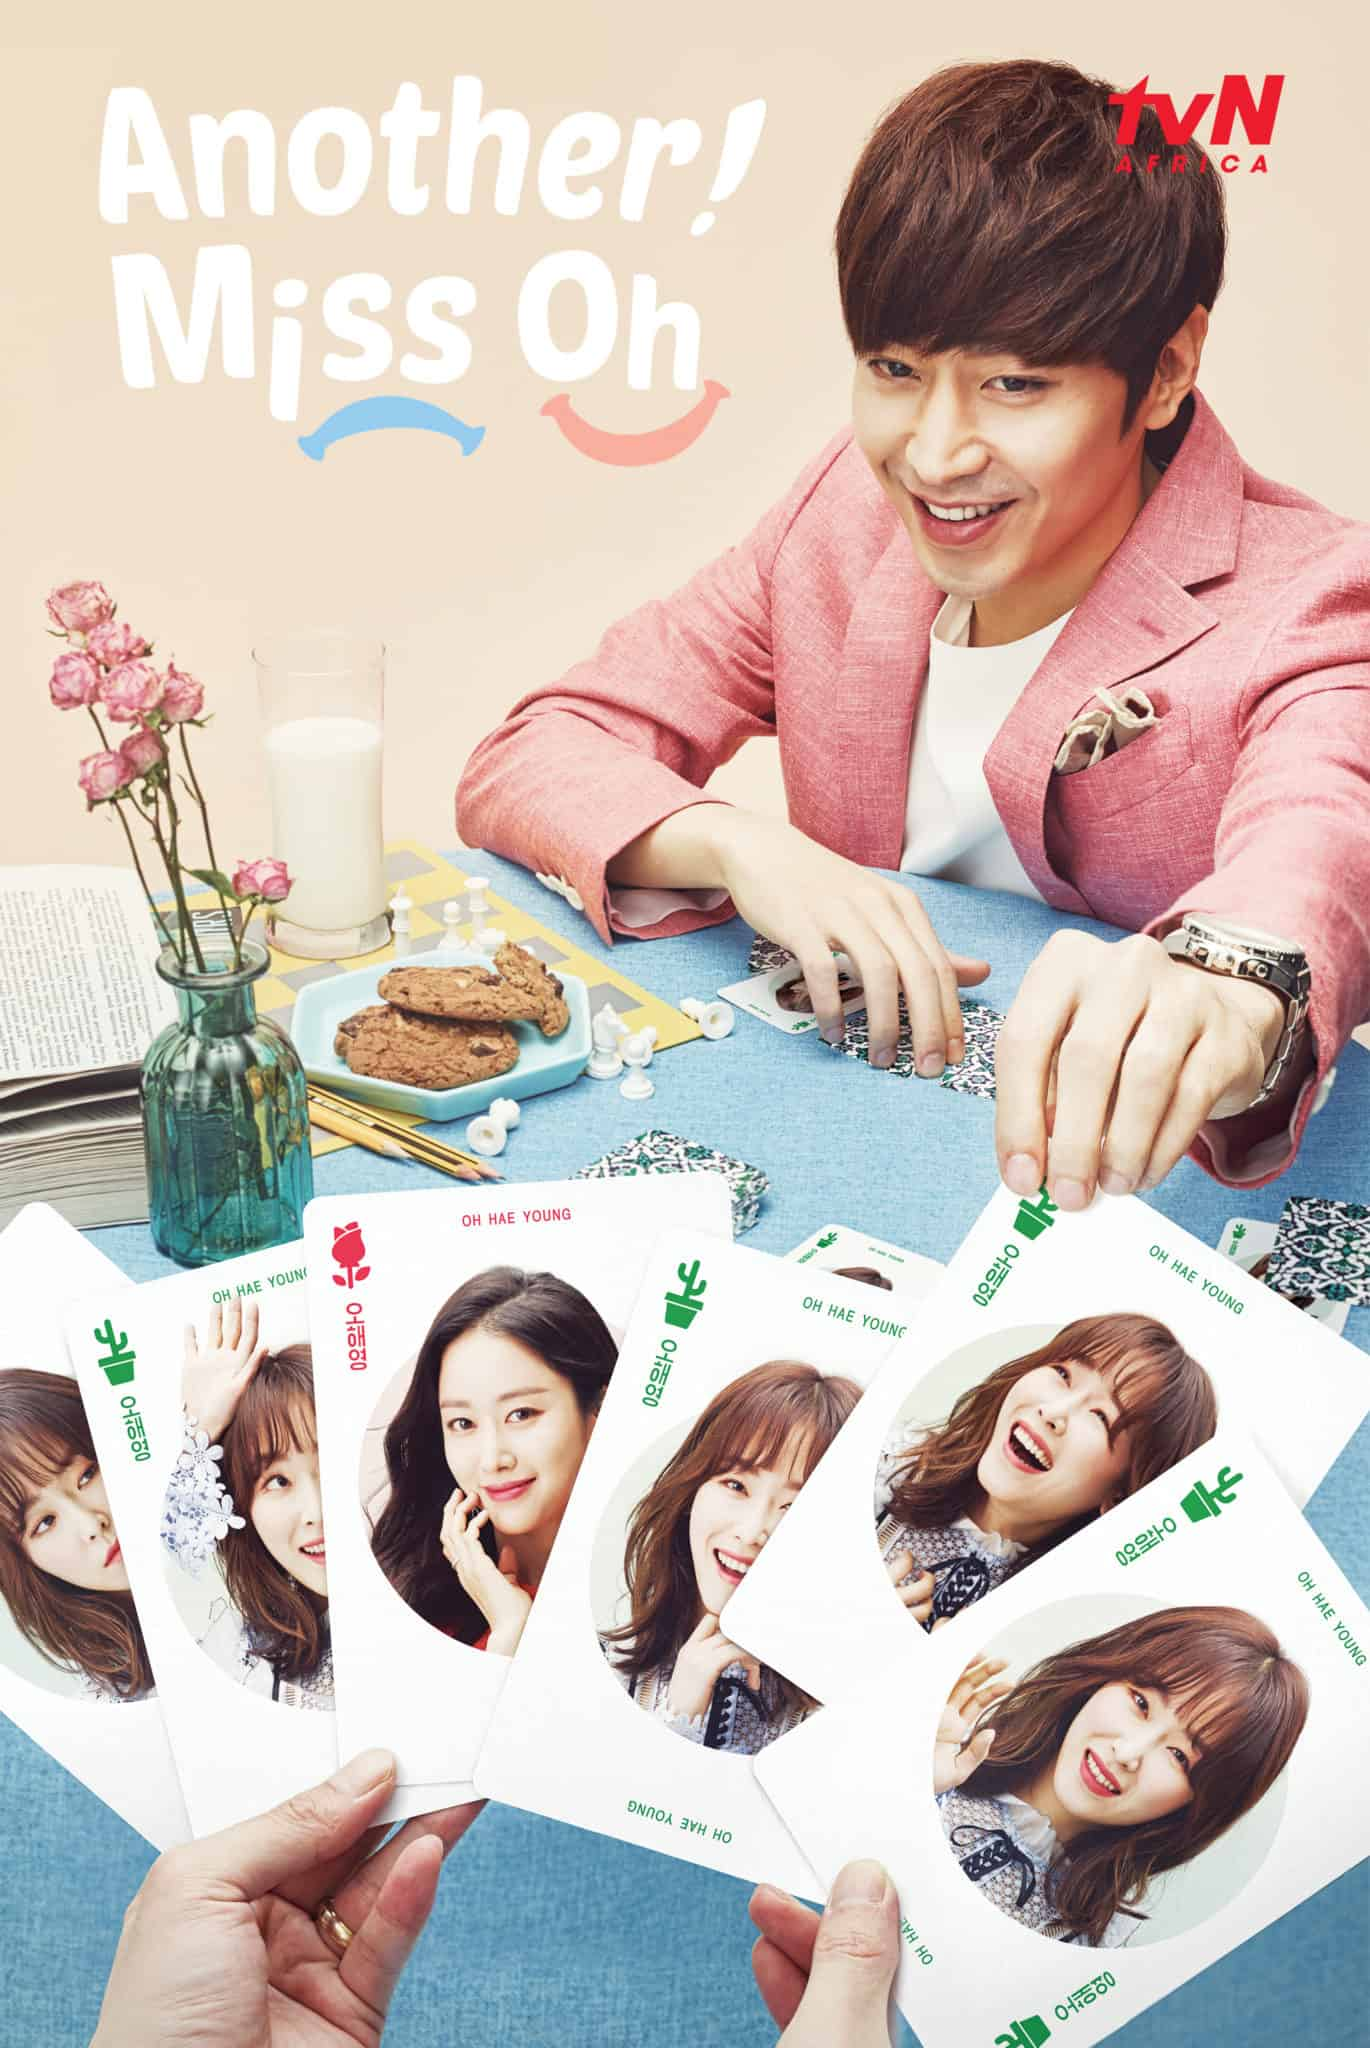 Another Miss Oh Poster 1 1370x2048 - Korea's number 1 entertainment channel debuts on DStv this March